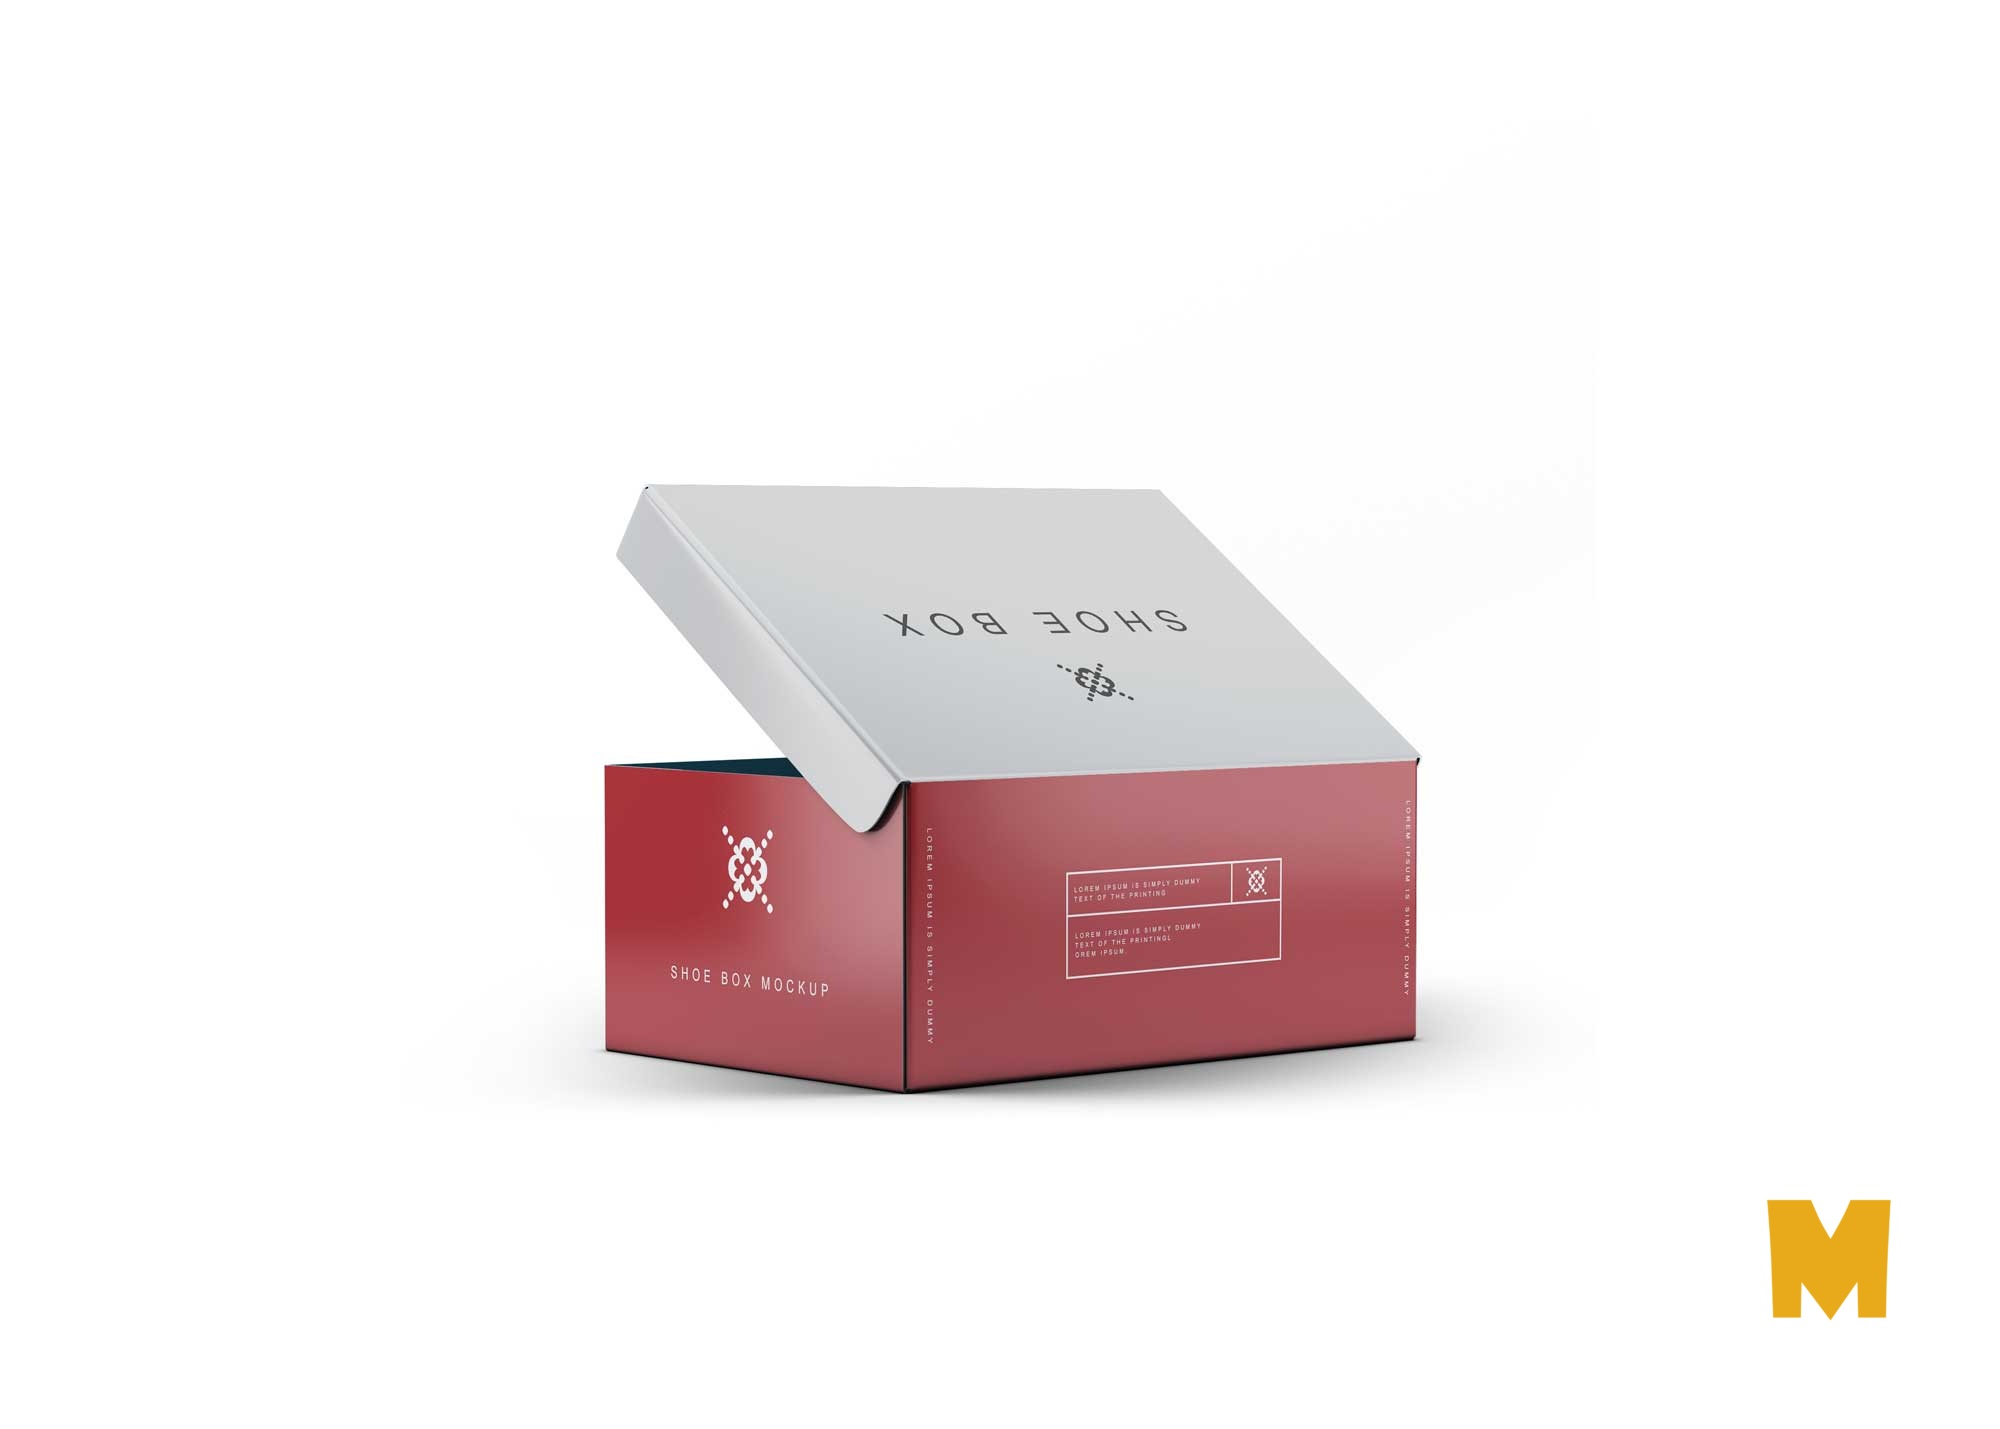 Premium Nike Shoes Box Packaging Mockup